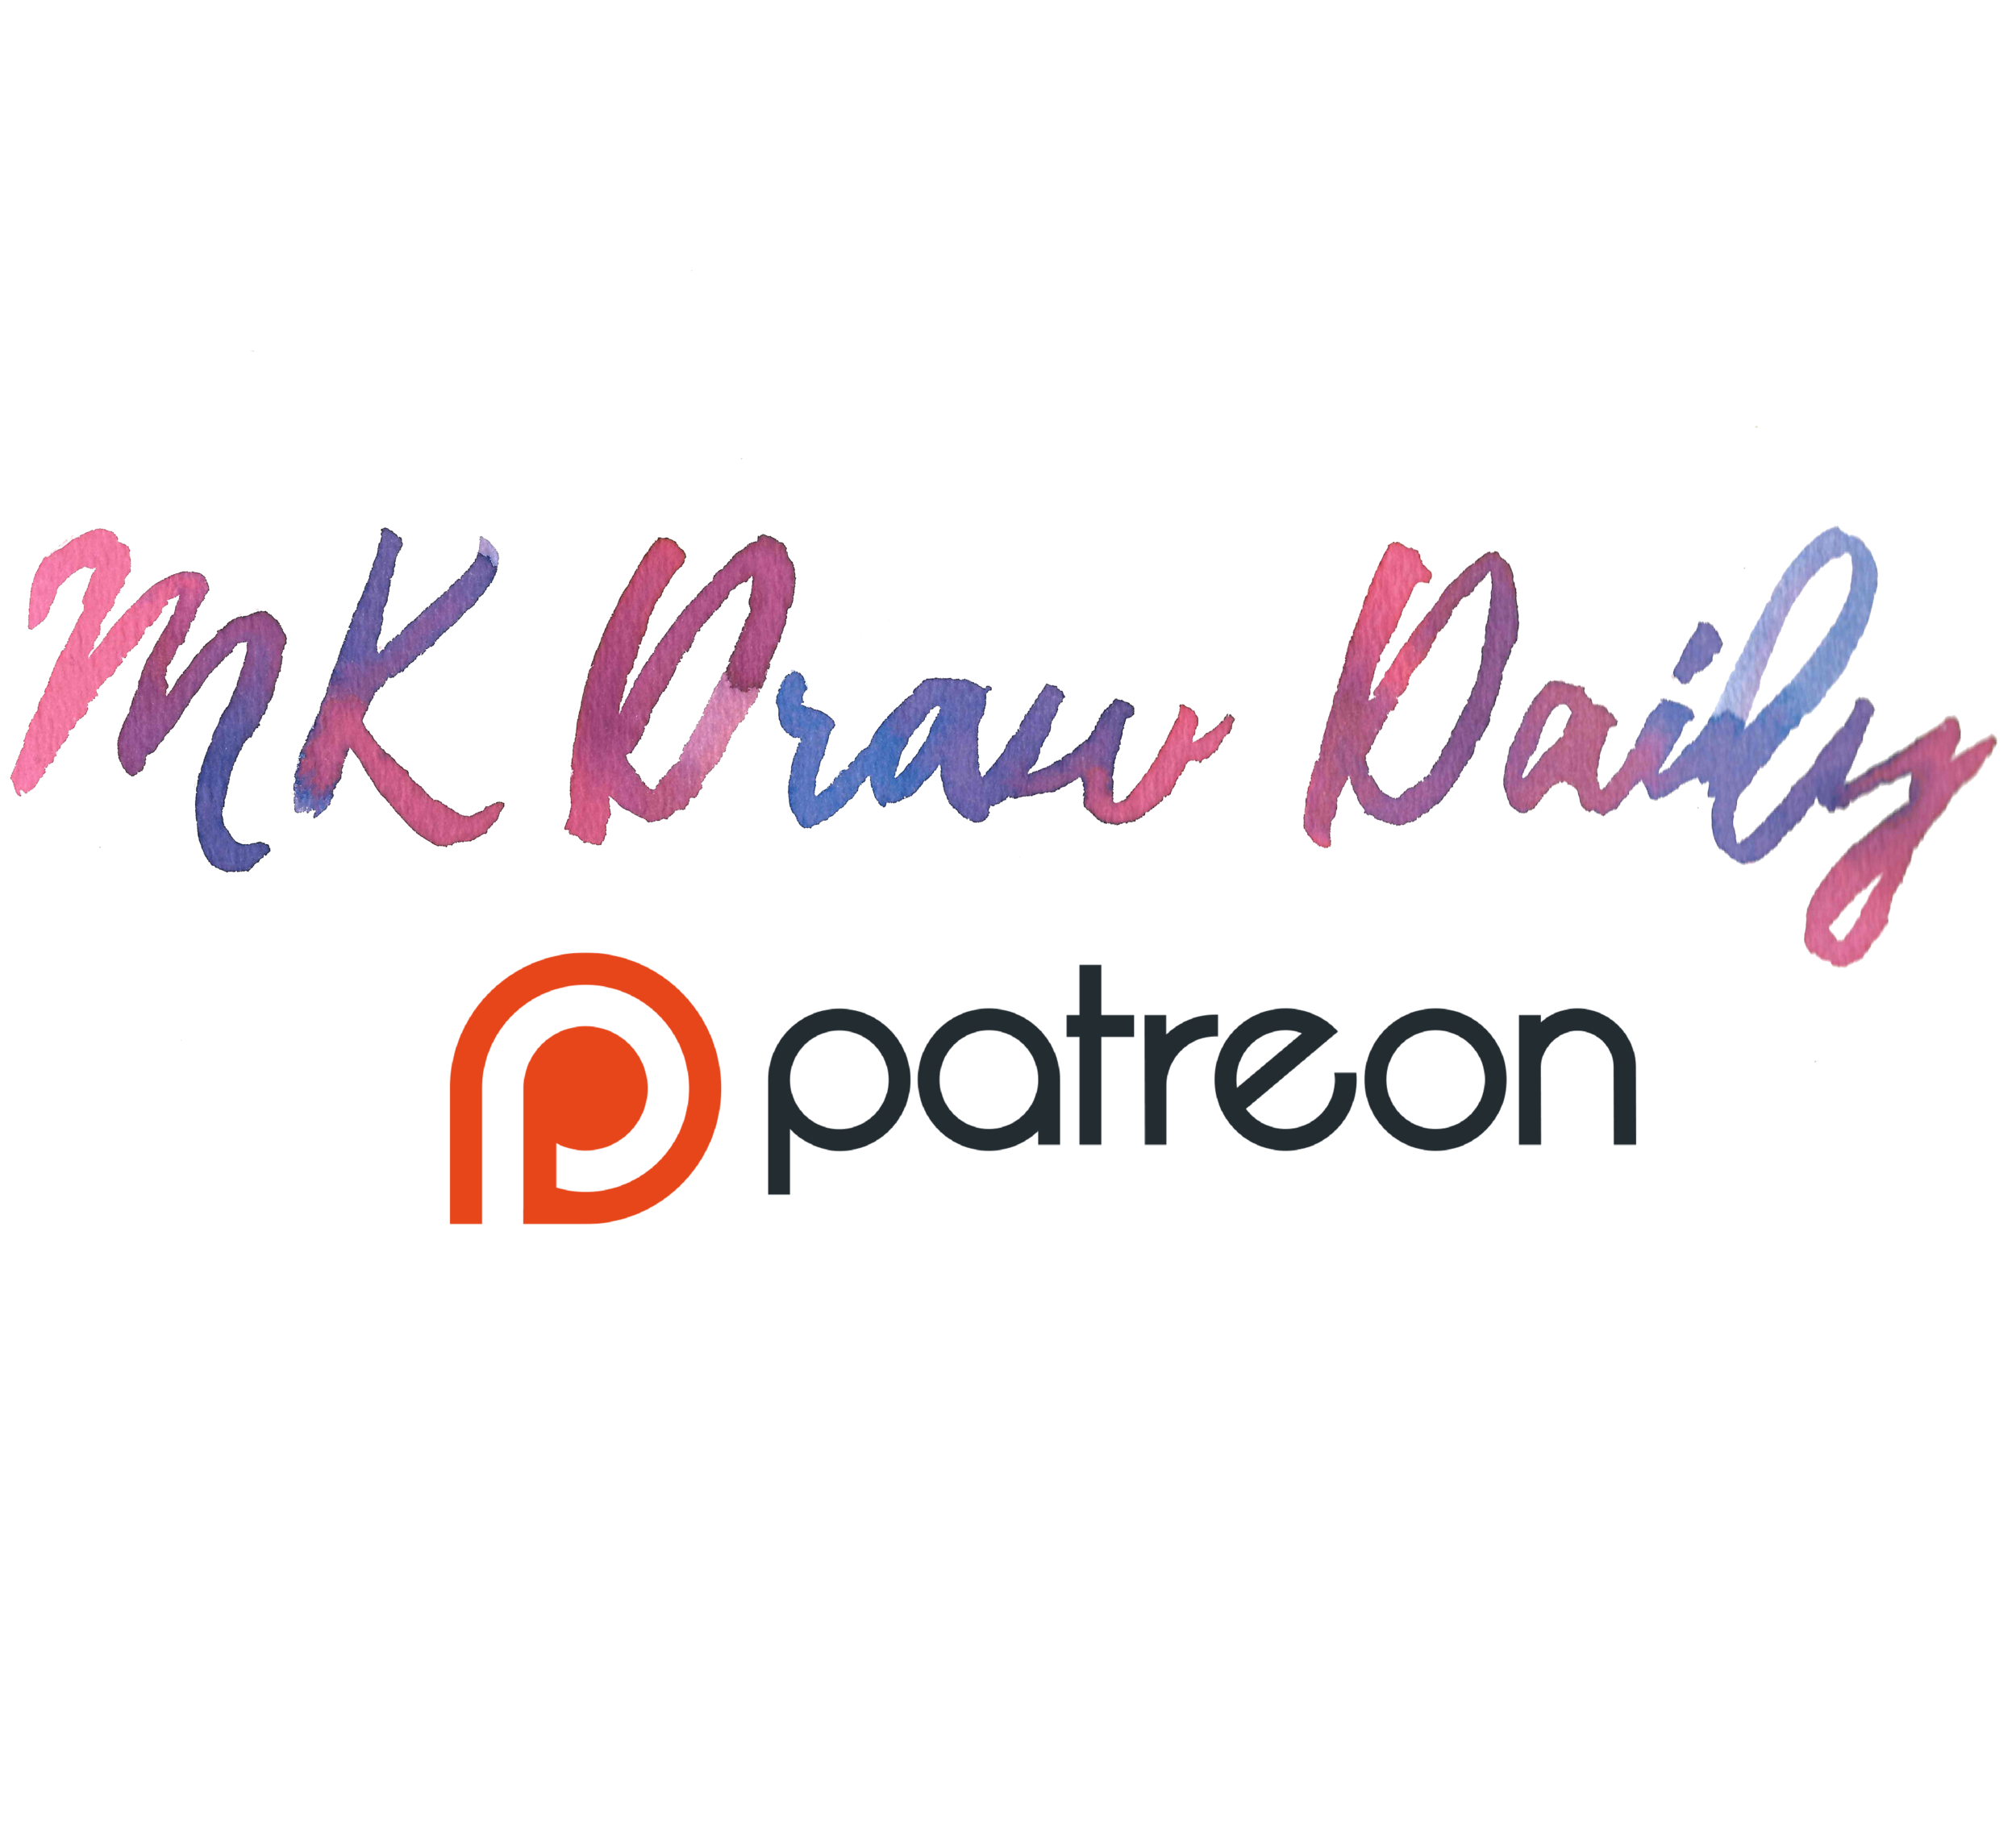 PATREON - If you would like to support Draw Daily and the learning materials being produced, check out what is available via Patreon.